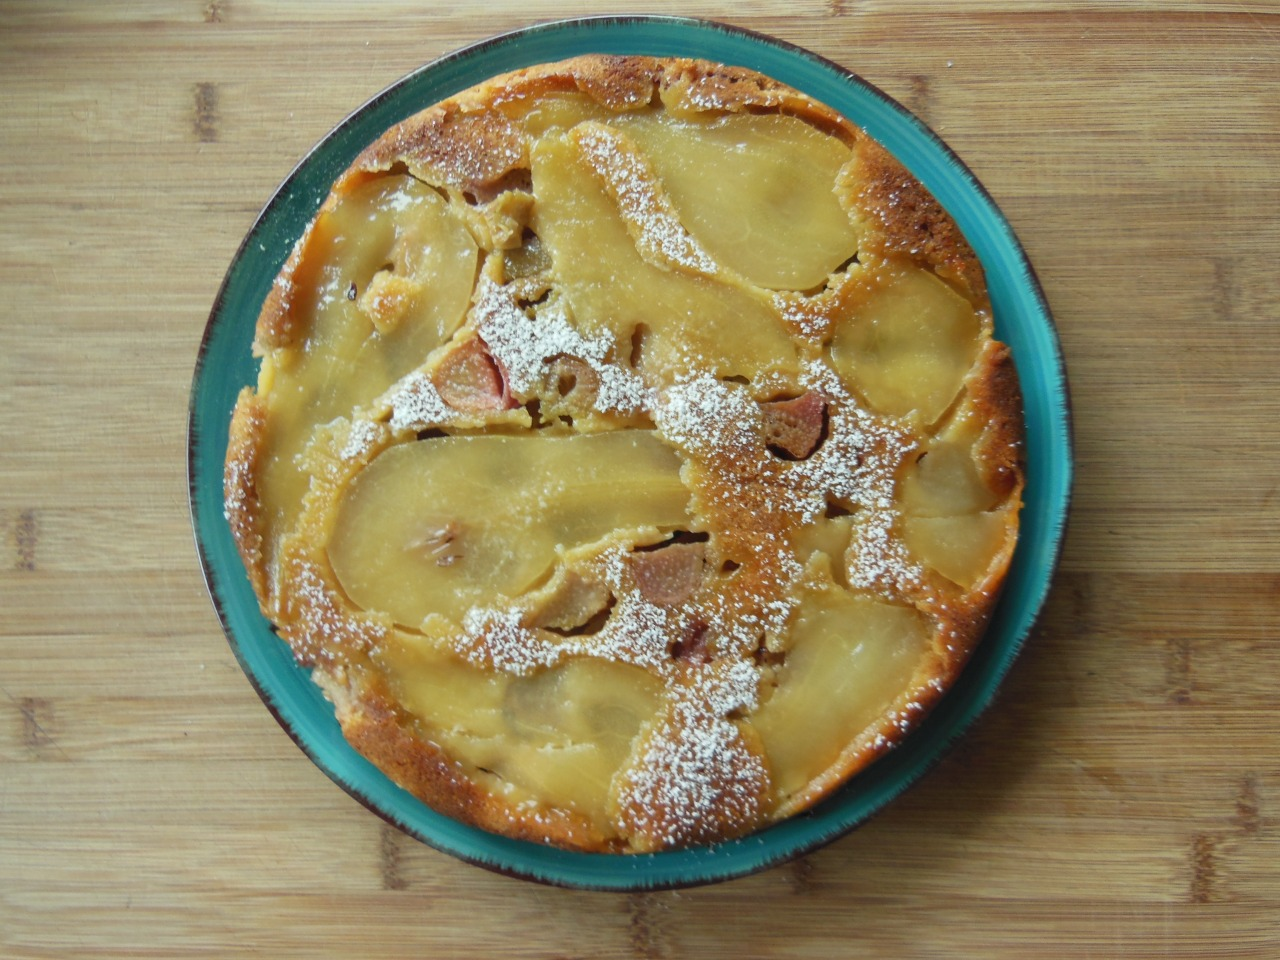 Pear-rhubarb turnover-cake with honey